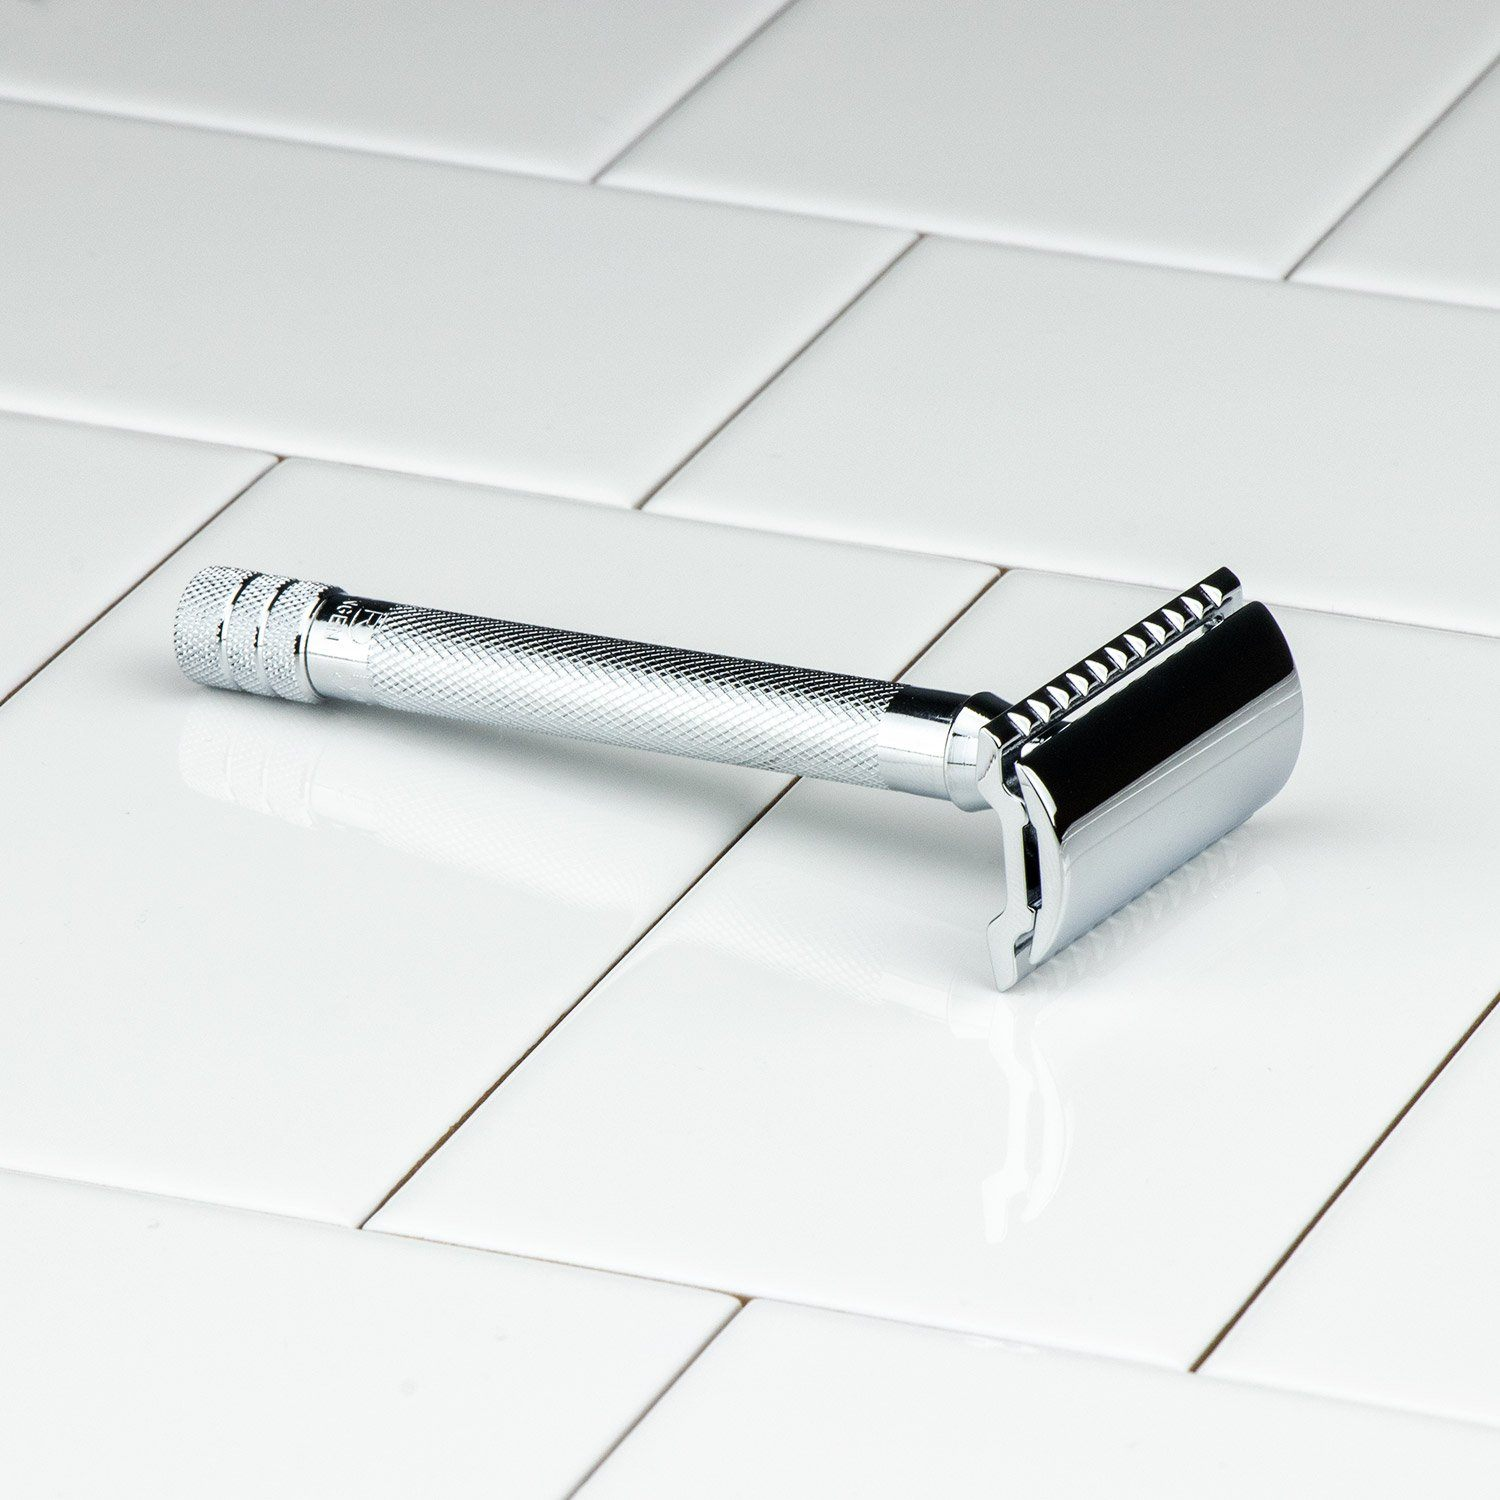 Merkur Chrome Handle Double Edge Safety Razor